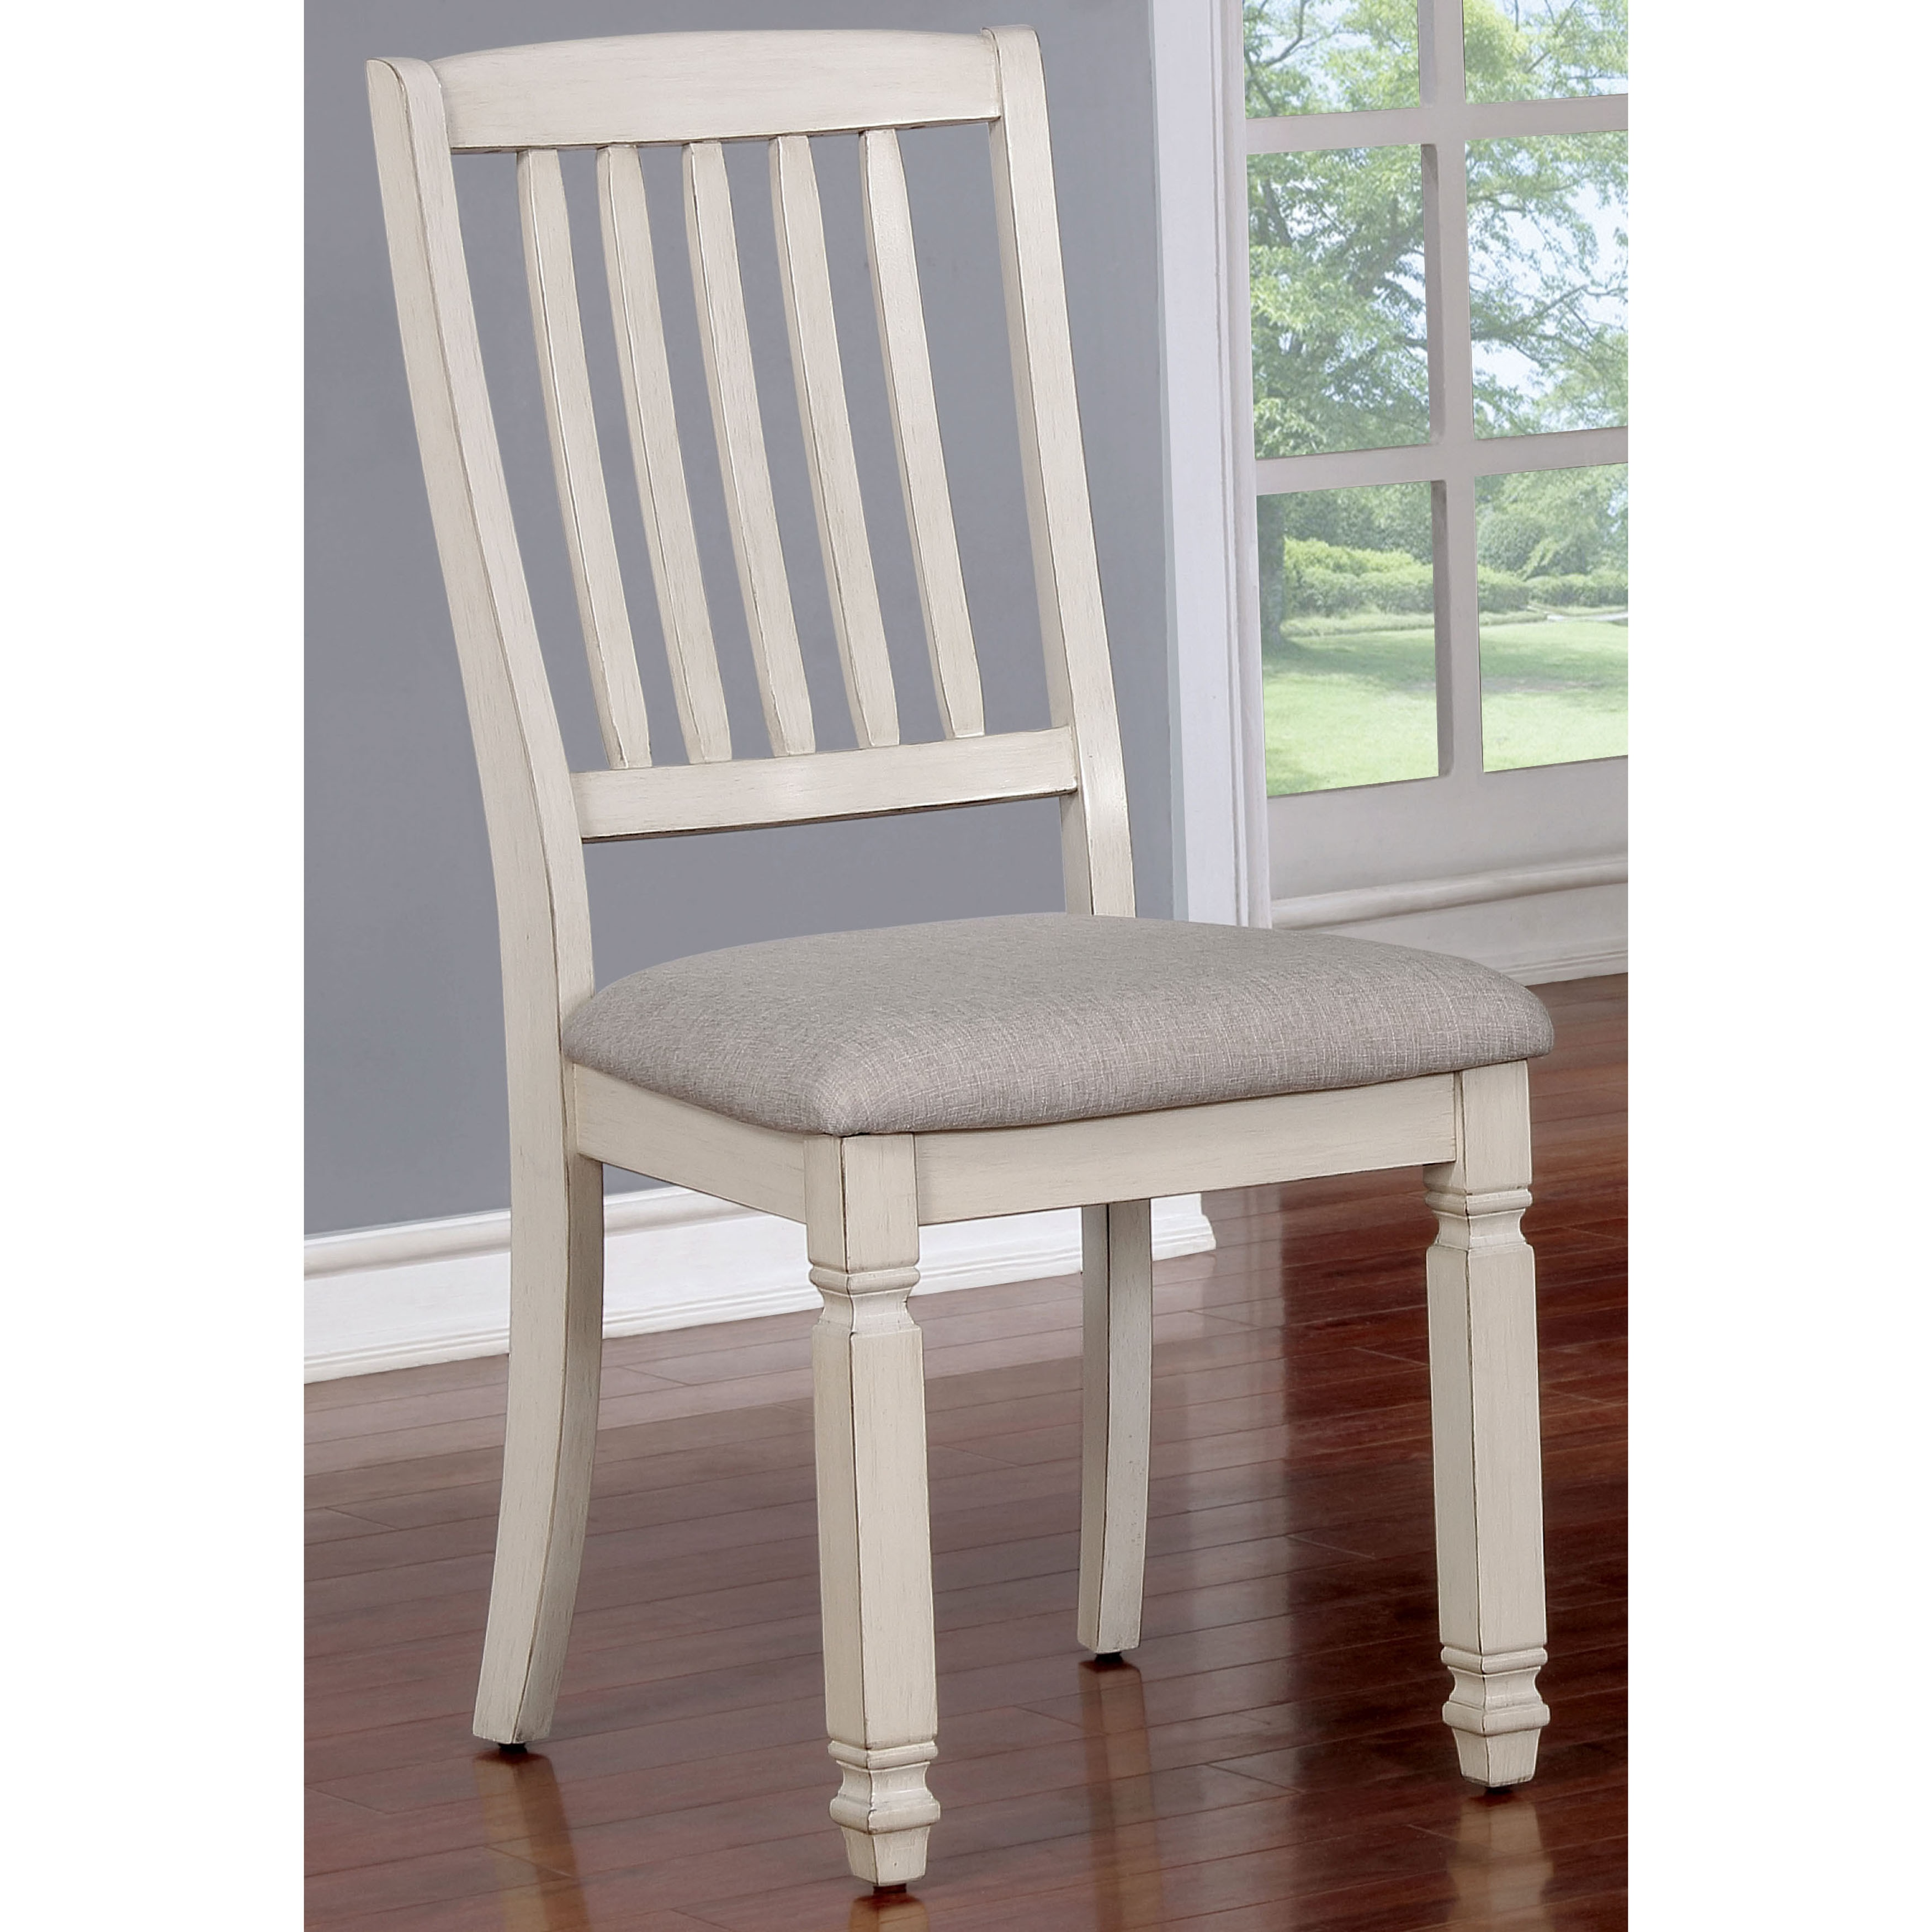 Furniture of America Keer Country White Fabric Dining Chairs Set of 2